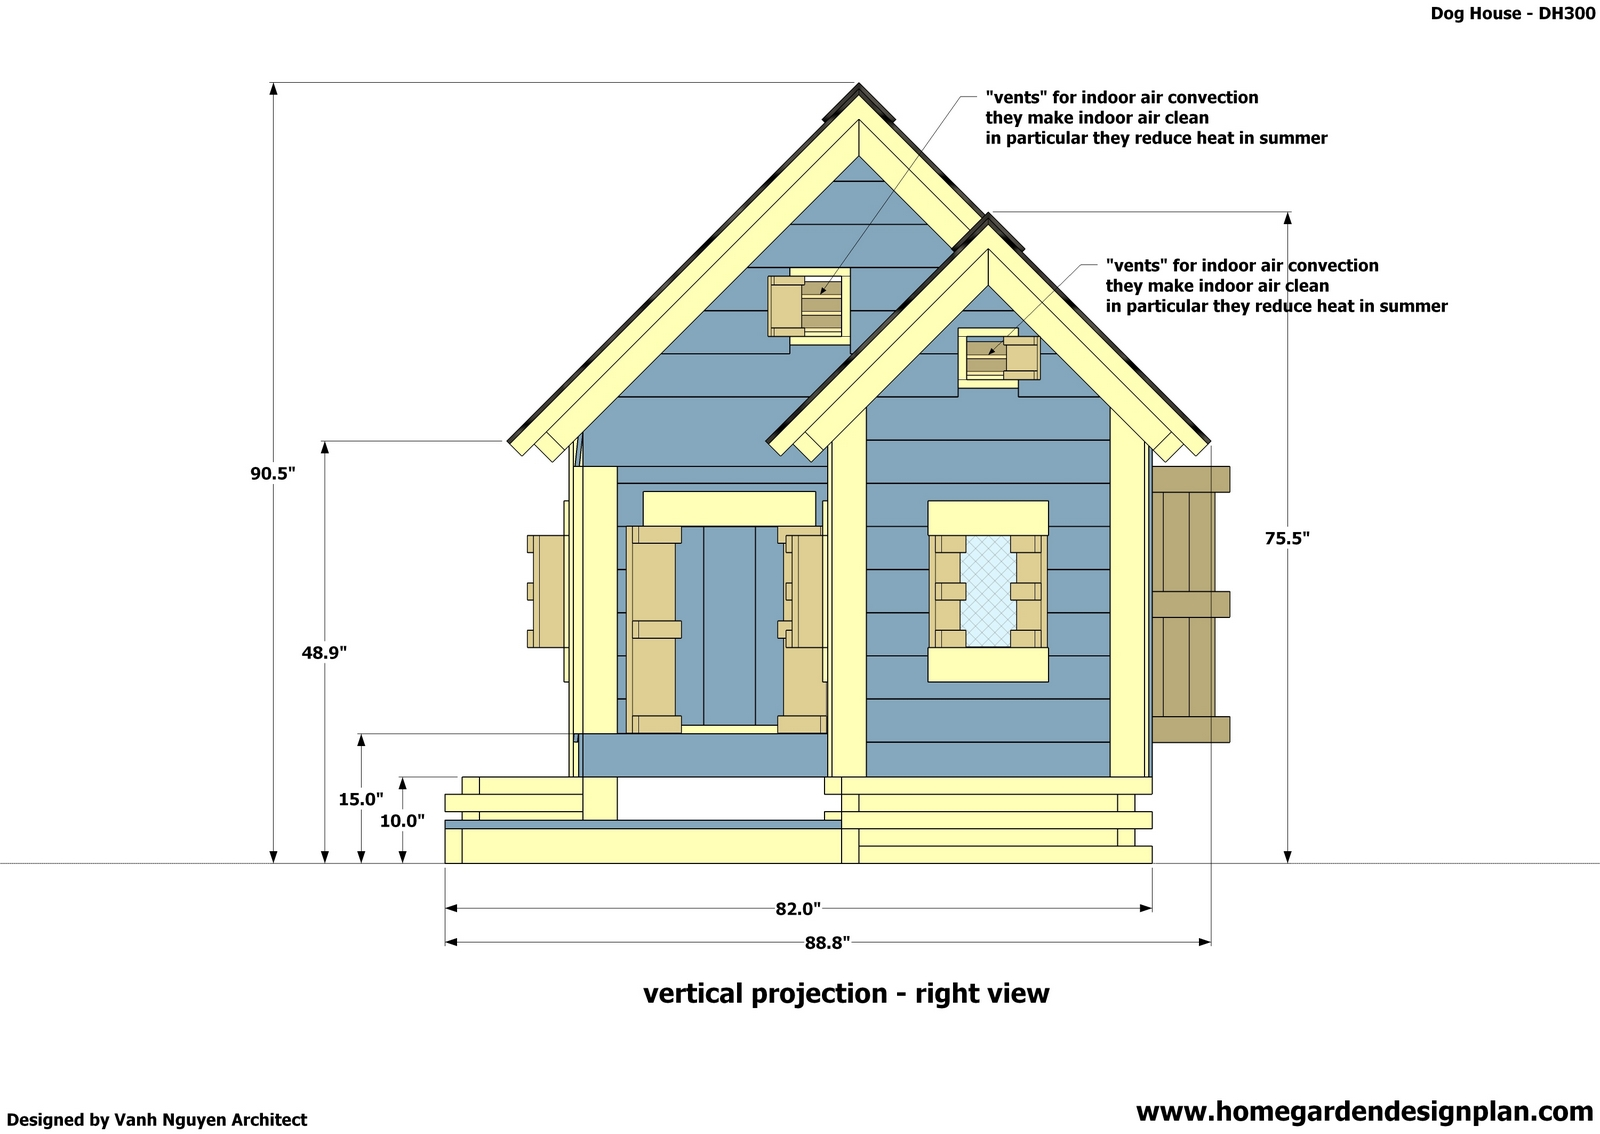 Home Garden Plans Dh300 Dog House Plans Free How To Build An Insulated Dog House